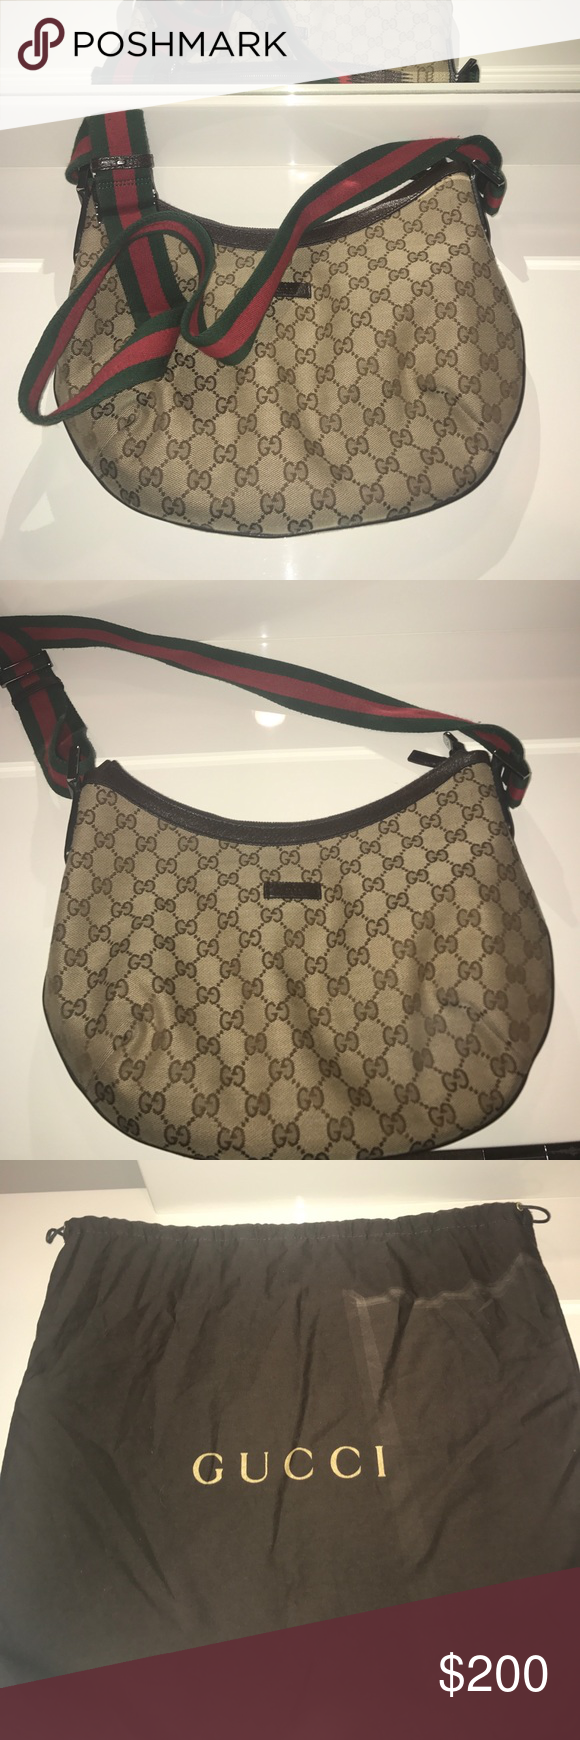 788c17bf23 old school gucci bag!!! great condition!! comes with dust bag Gucci Bags  Shoulder Bags